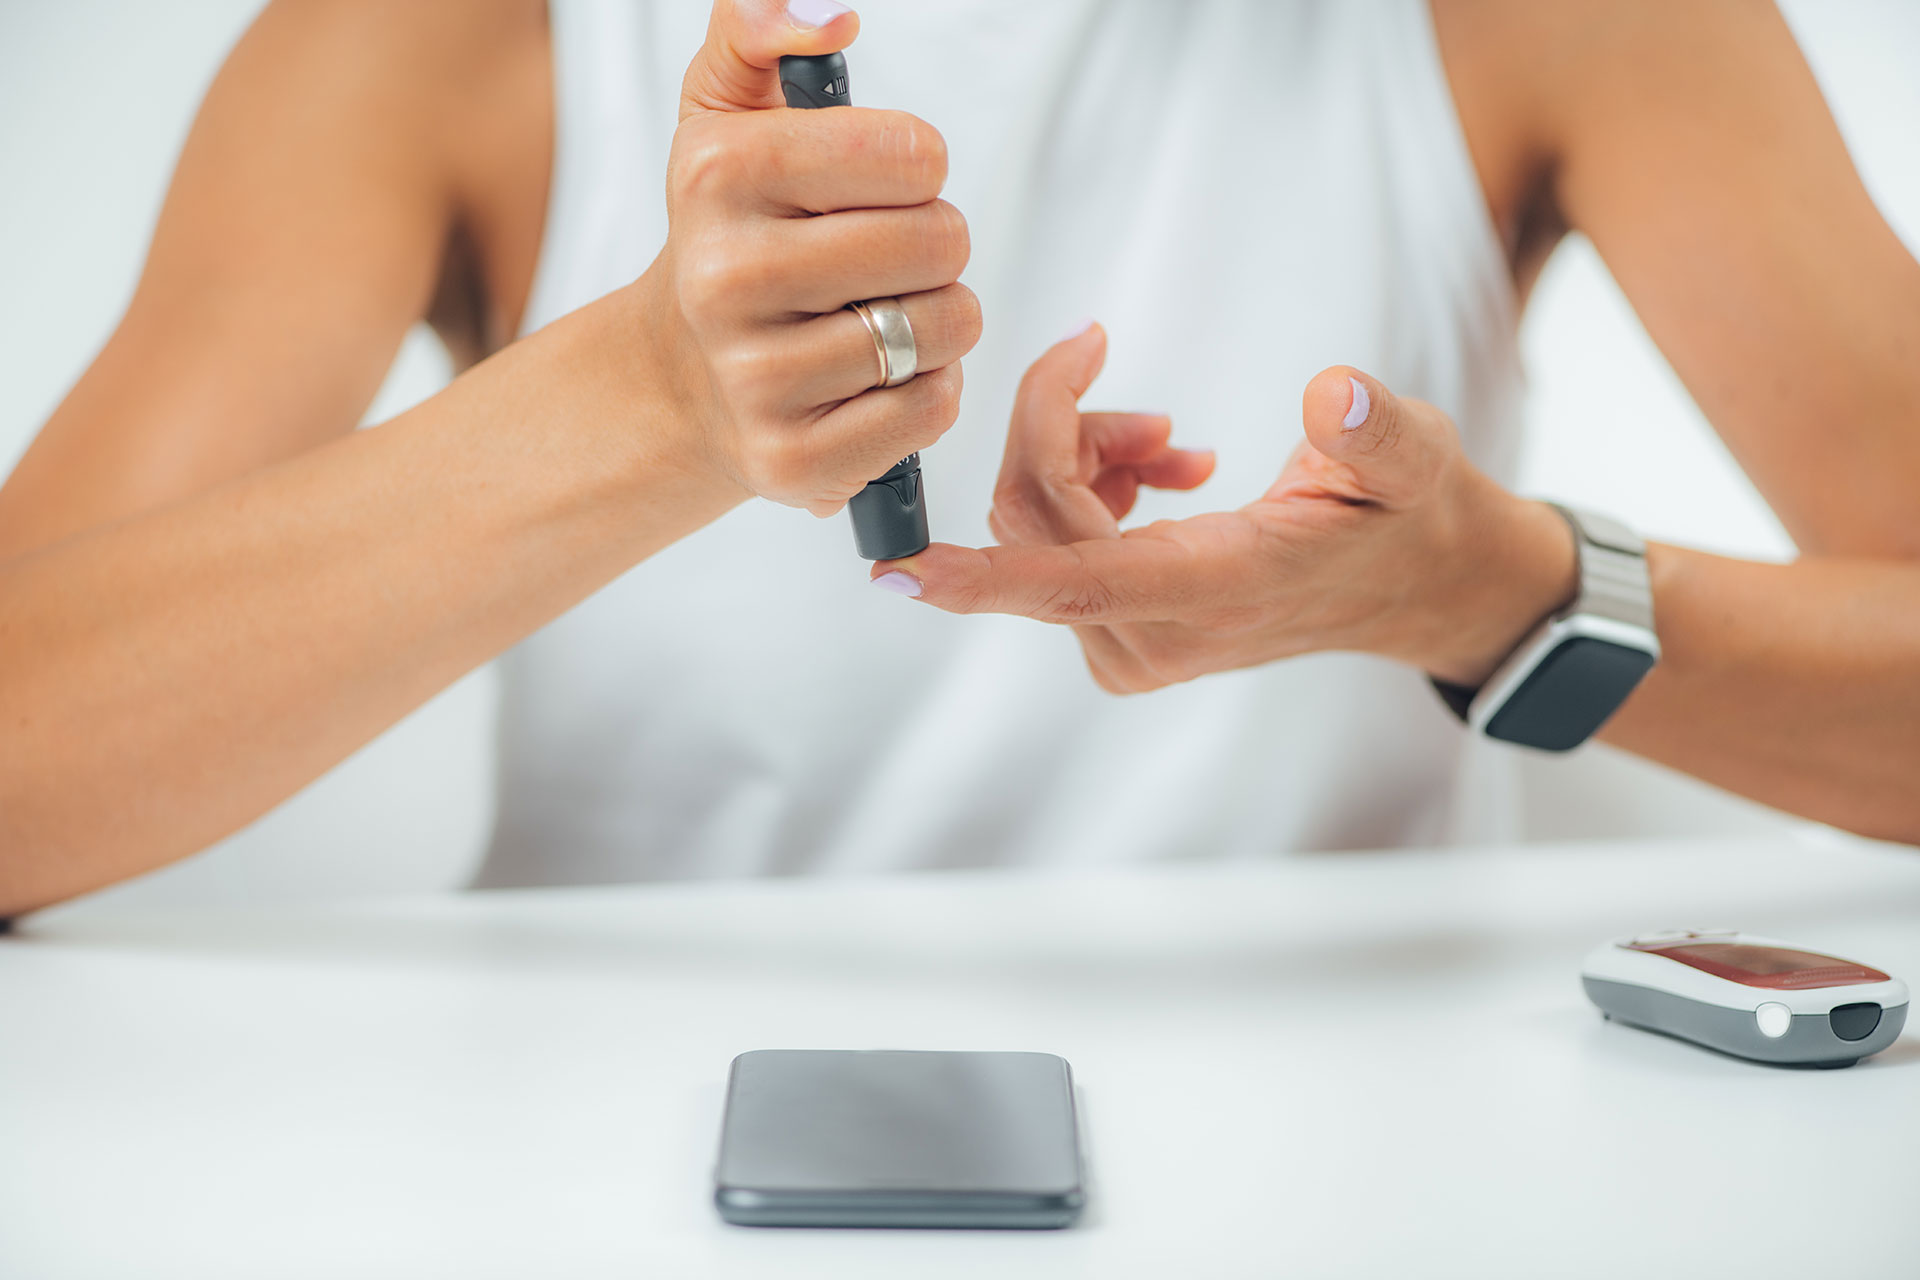 Losing Weight Safely When You Have Diabetes